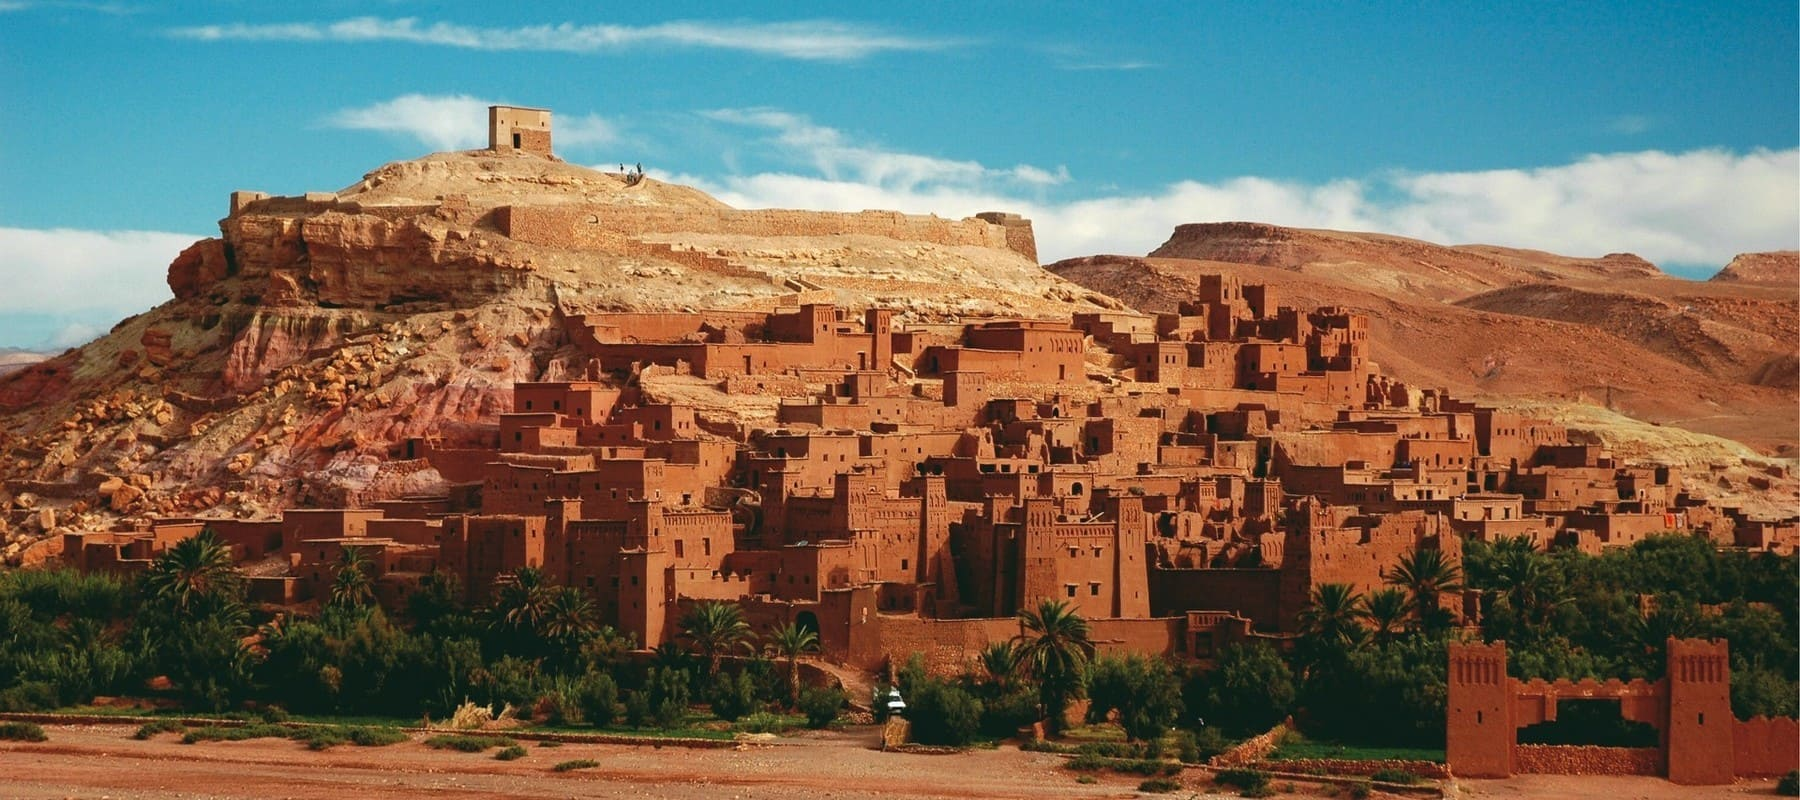 Best Morocco Tours Morocco Travel Package Vacation To Morocco - Morocco tours